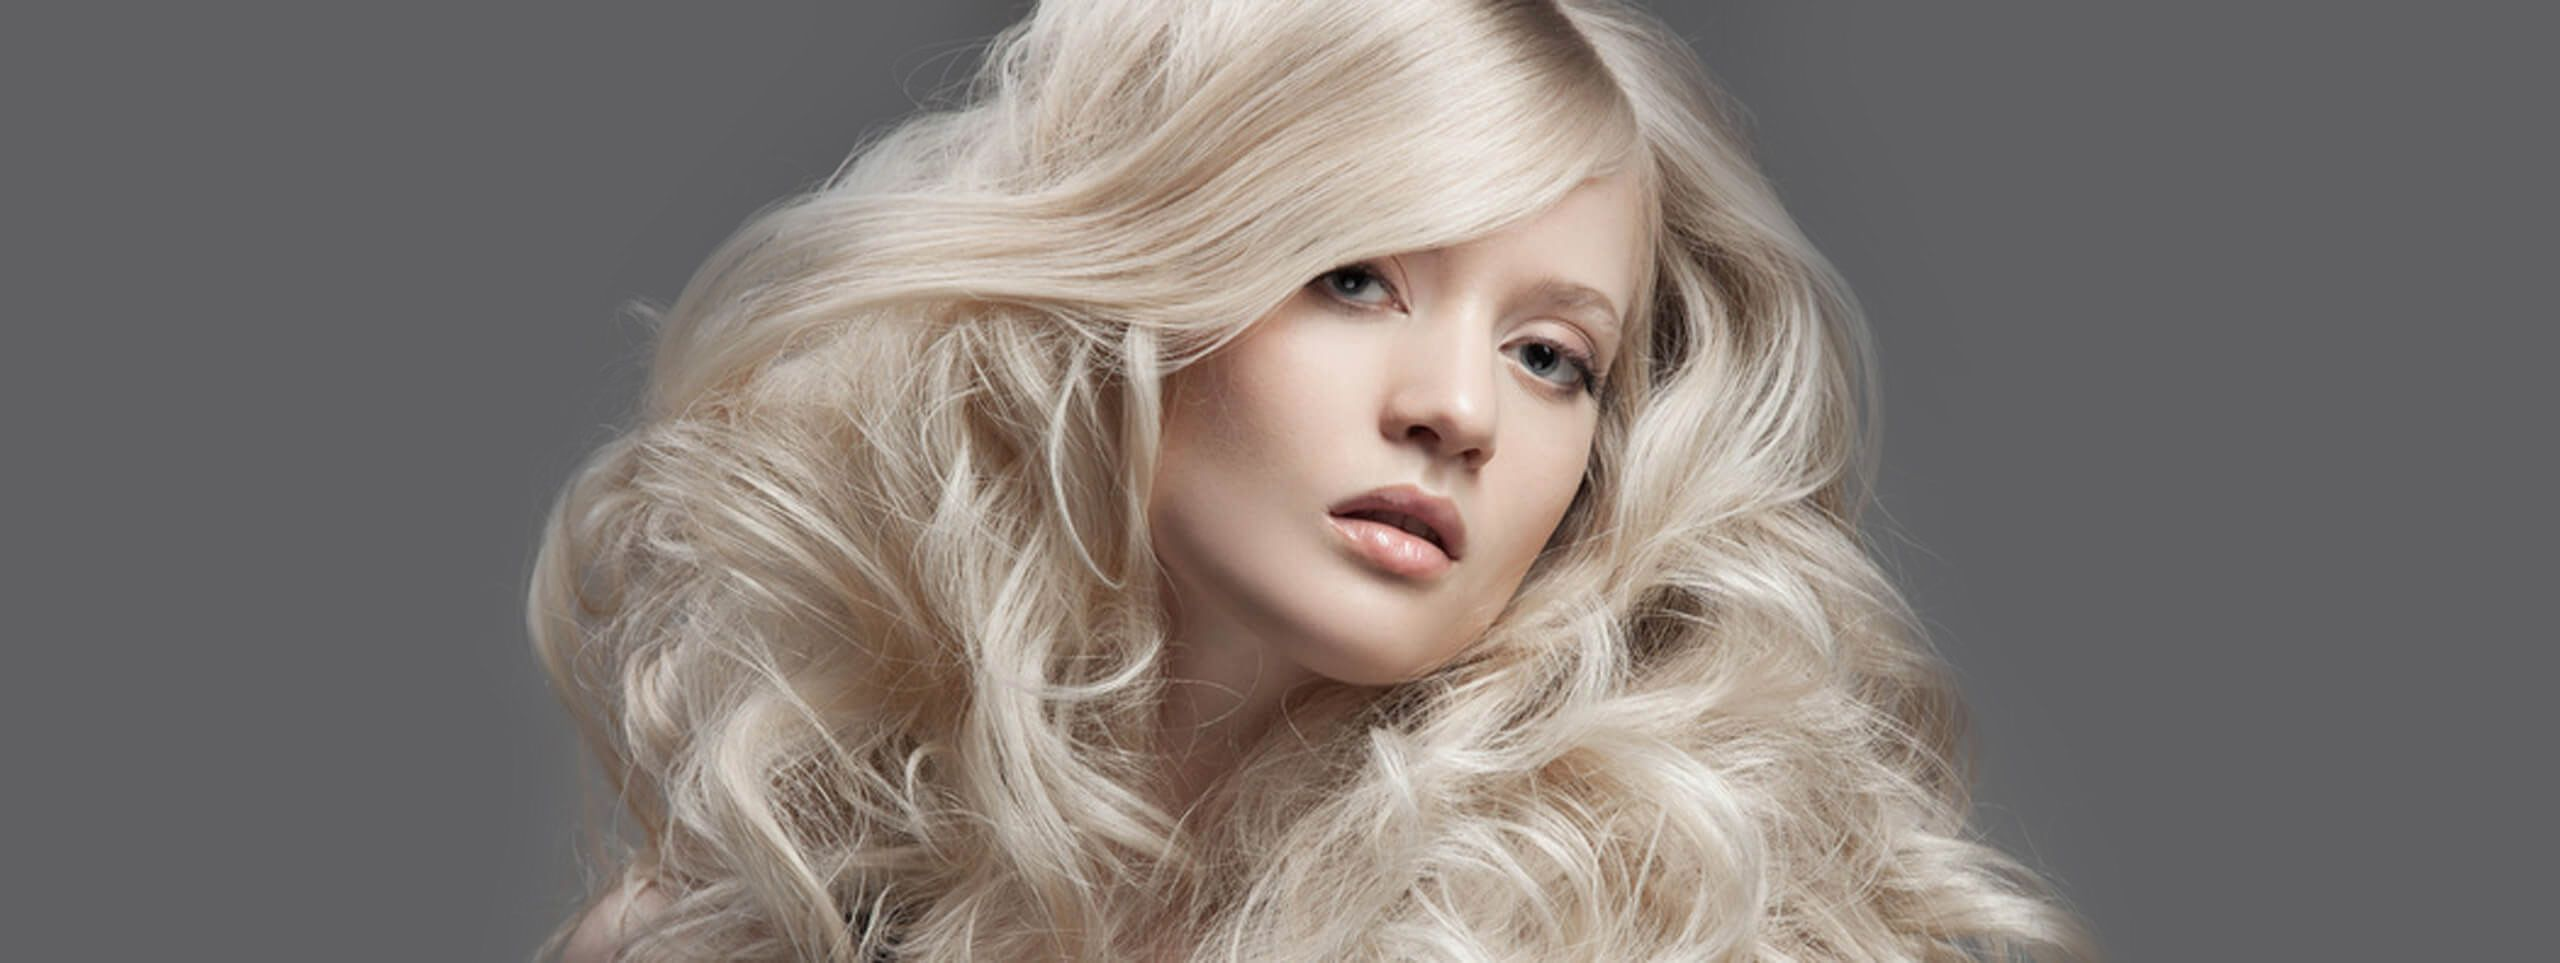 Model with voluminous blonde hairstyle